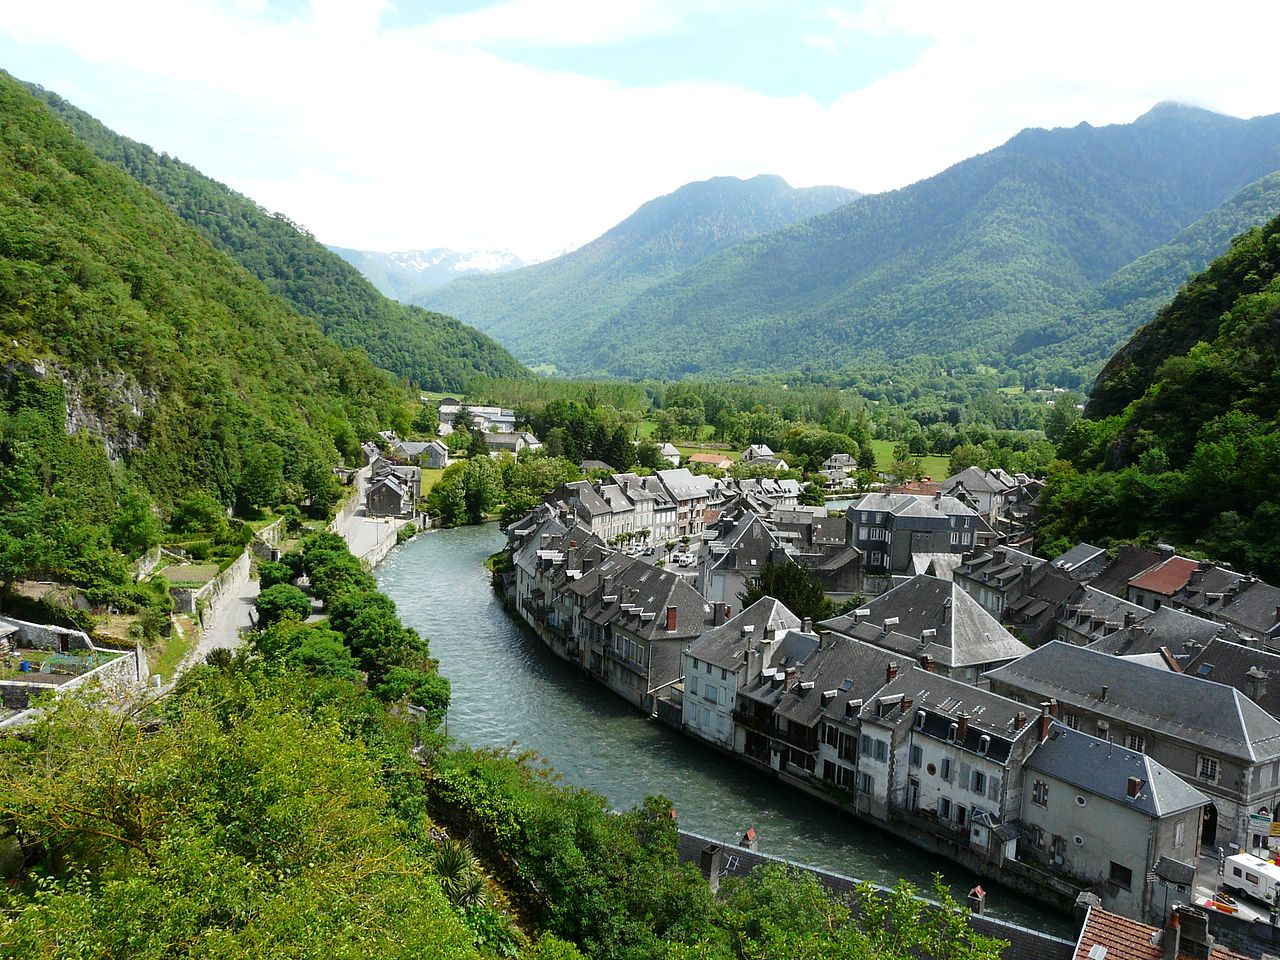 View from above of Saint-Béat in the Pyrenees